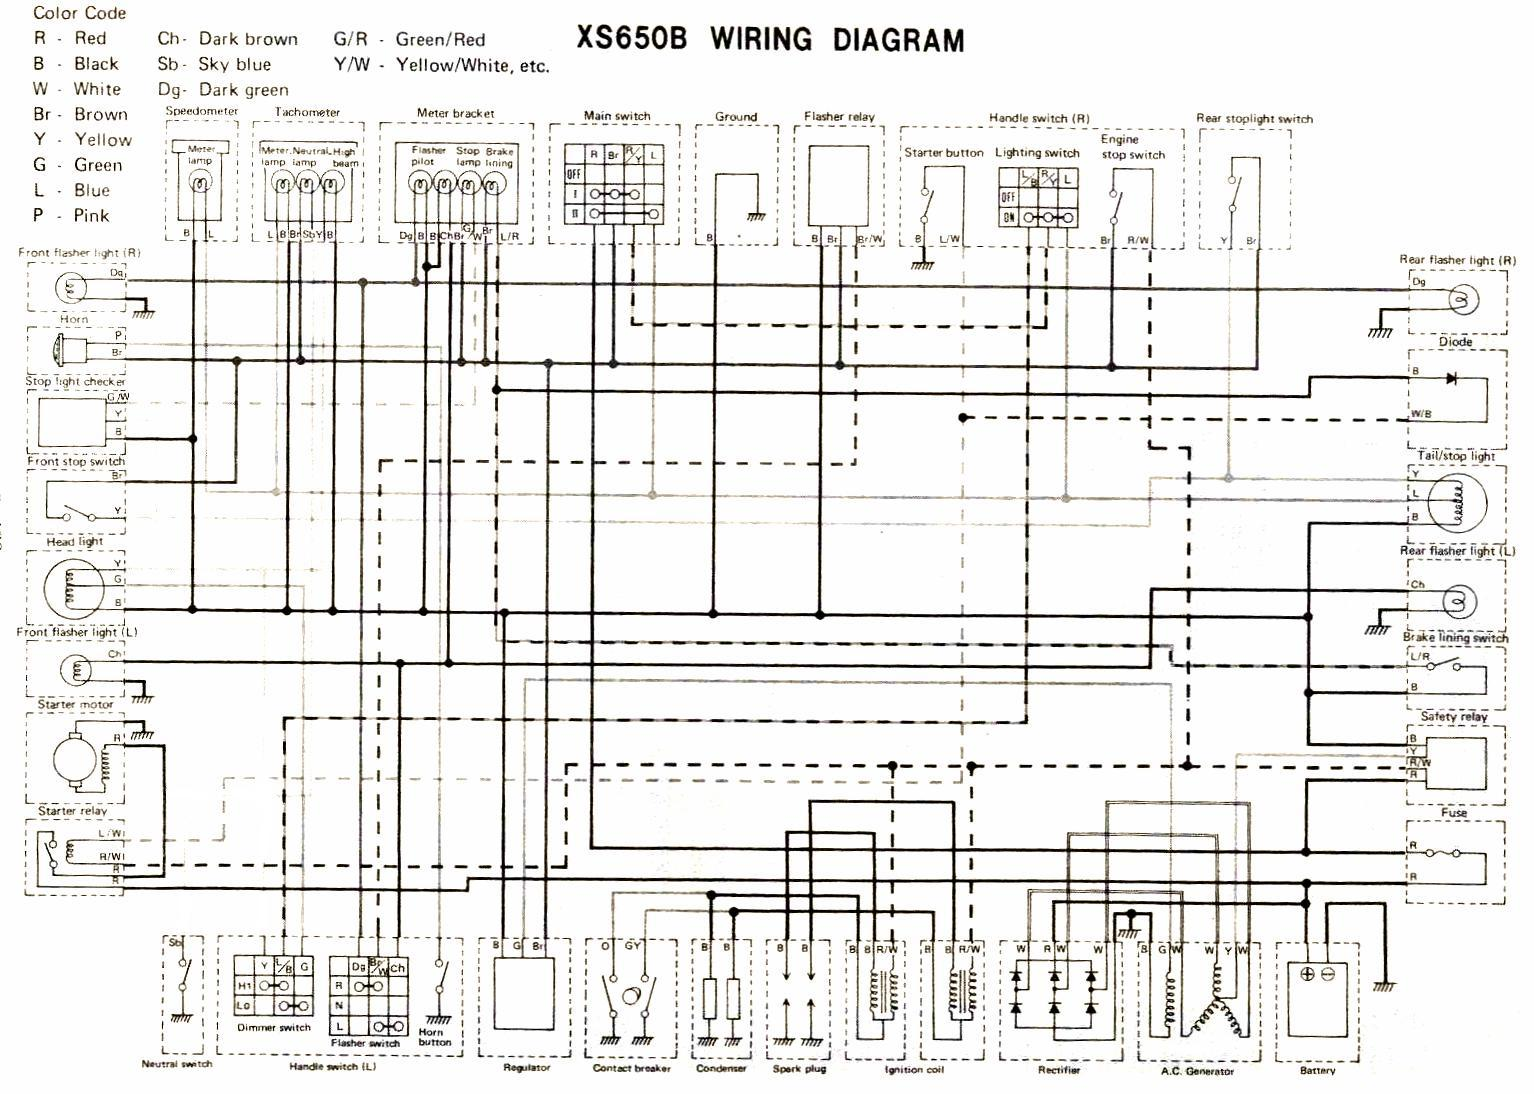 1999 Yamaha 650 Wiring Diagram Wiring Diagrams User